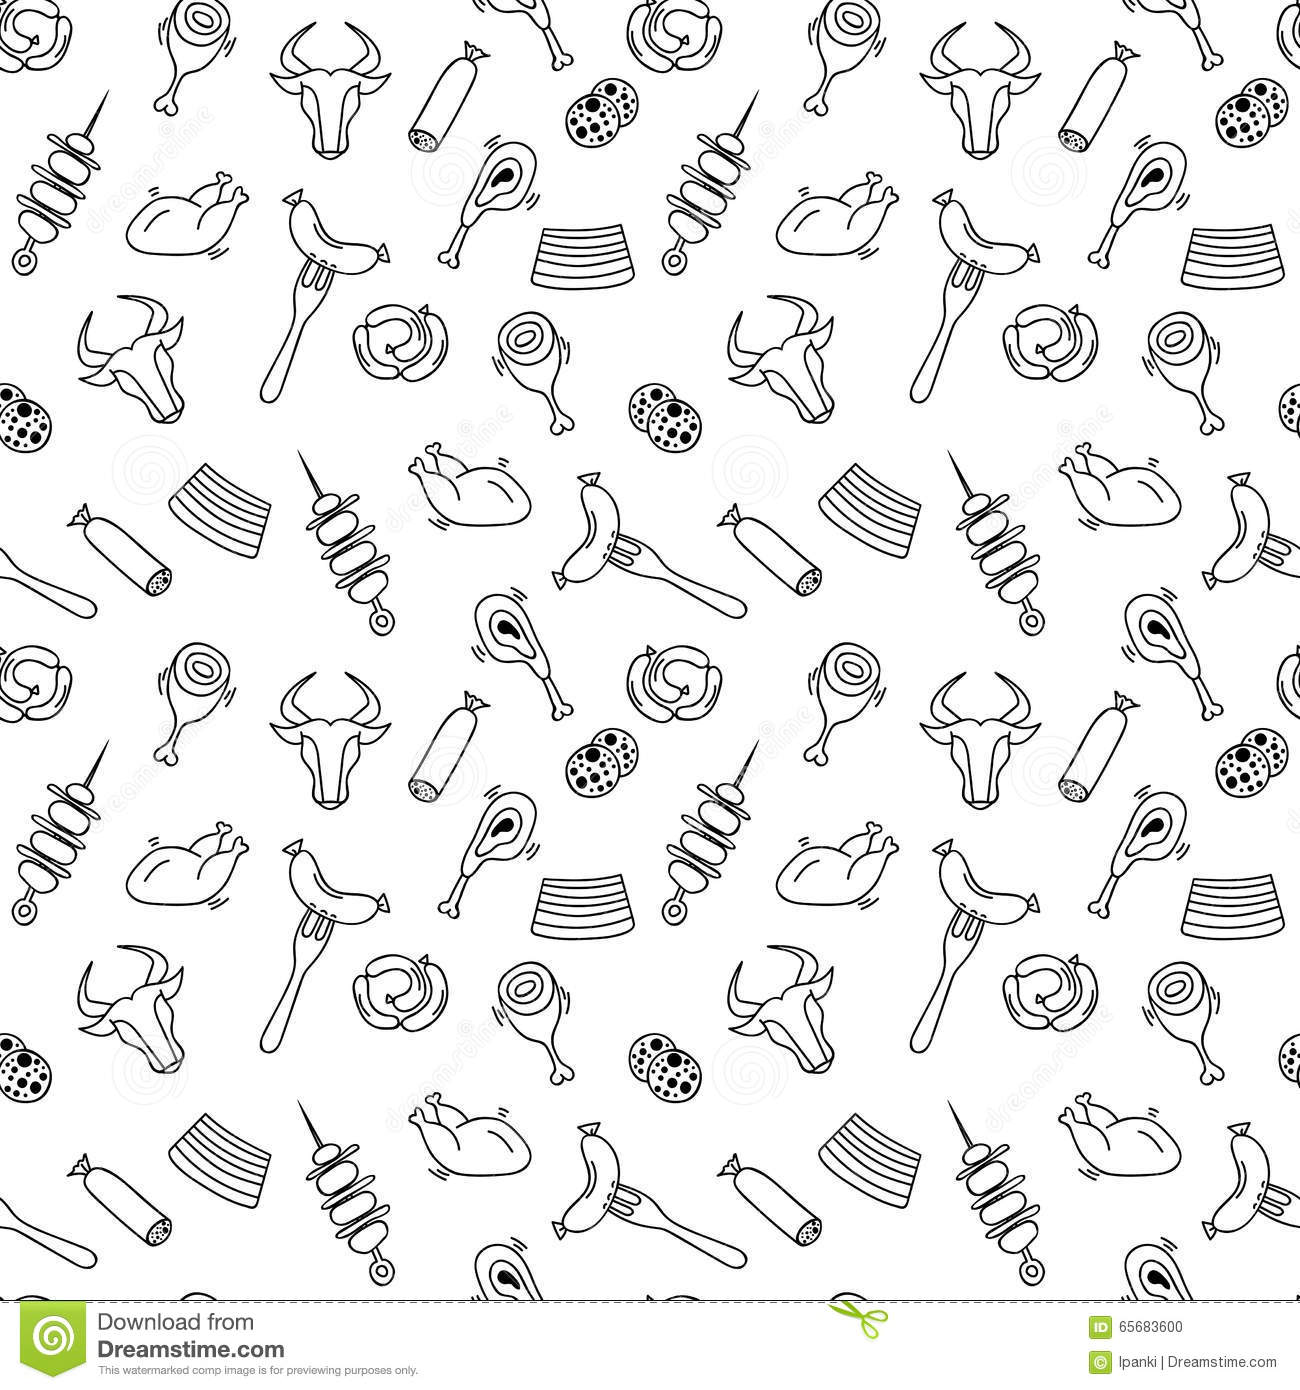 Hand drawn artistic meat seamless pattern for adult coloring pages in doodle style with sausages stakes shish kebabs chickens ethnic ornamental vector